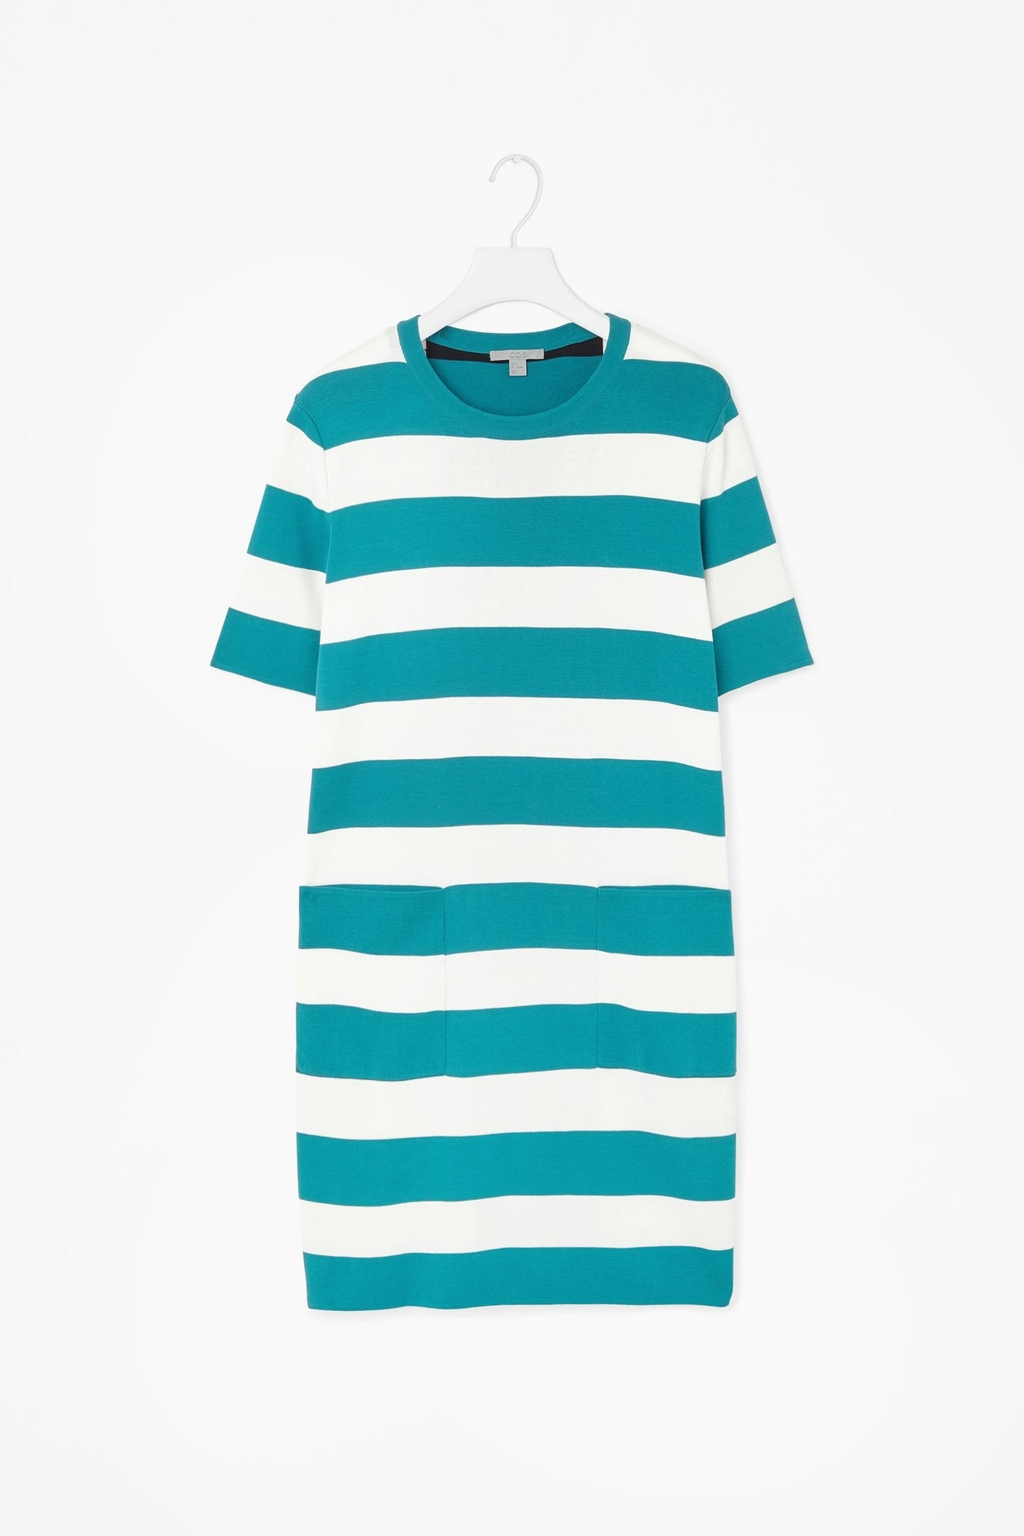 Block Stripe Knitted Dress - style: shift; length: mid thigh; fit: loose; pattern: horizontal stripes; predominant colour: turquoise; occasions: casual; fibres: cotton - mix; neckline: crew; sleeve length: short sleeve; sleeve style: standard; texture group: knits/crochet; pattern type: knitted - fine stitch; pattern size: standard; season: s/s 2015; wardrobe: highlight